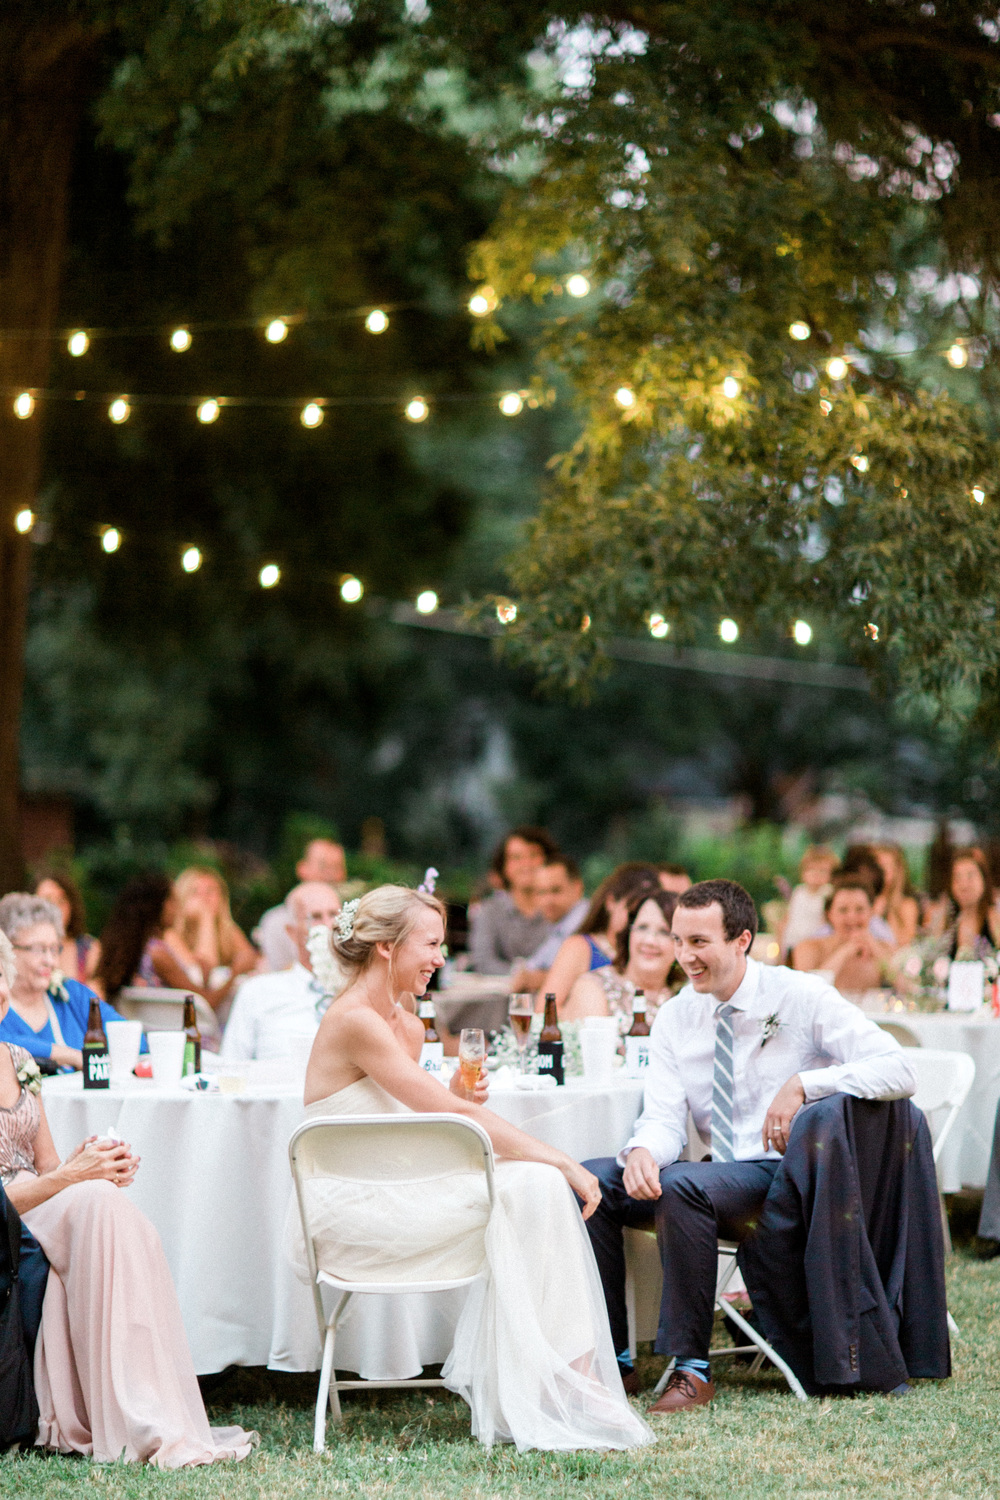 Sarah + John's Whimsical Garden Party Wedding